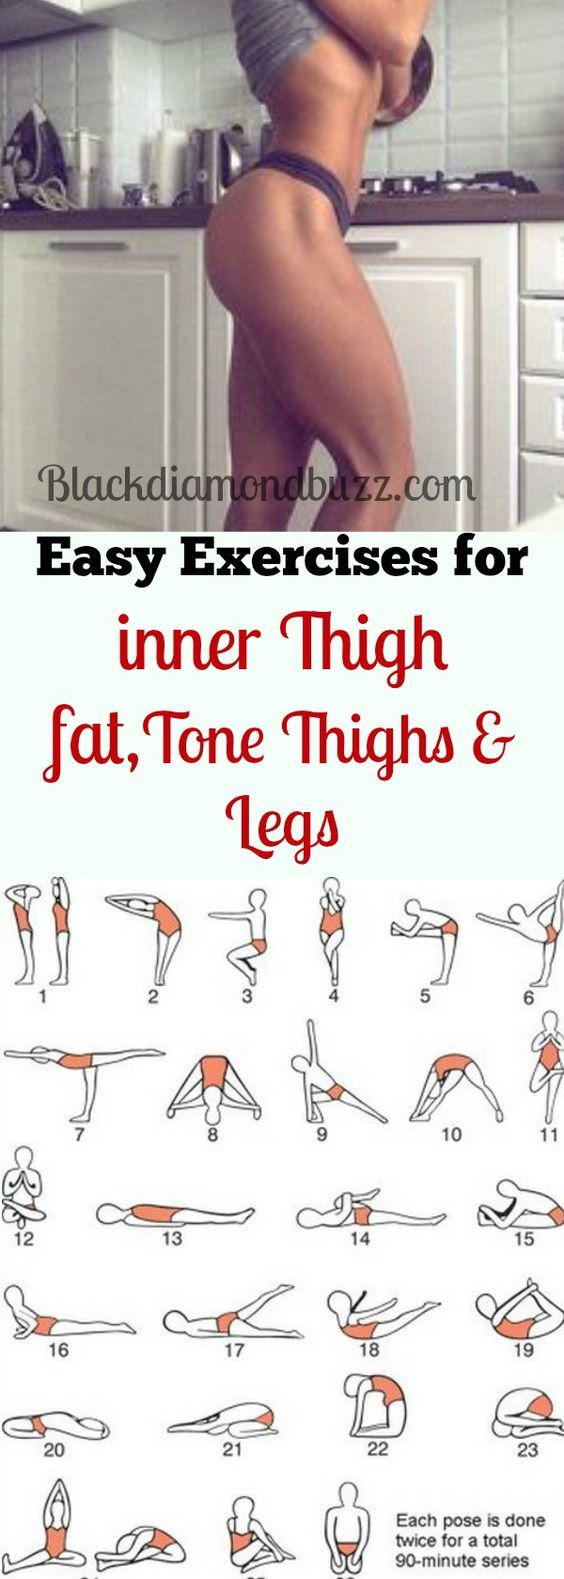 Exercises For Inner Thigh Fat 26